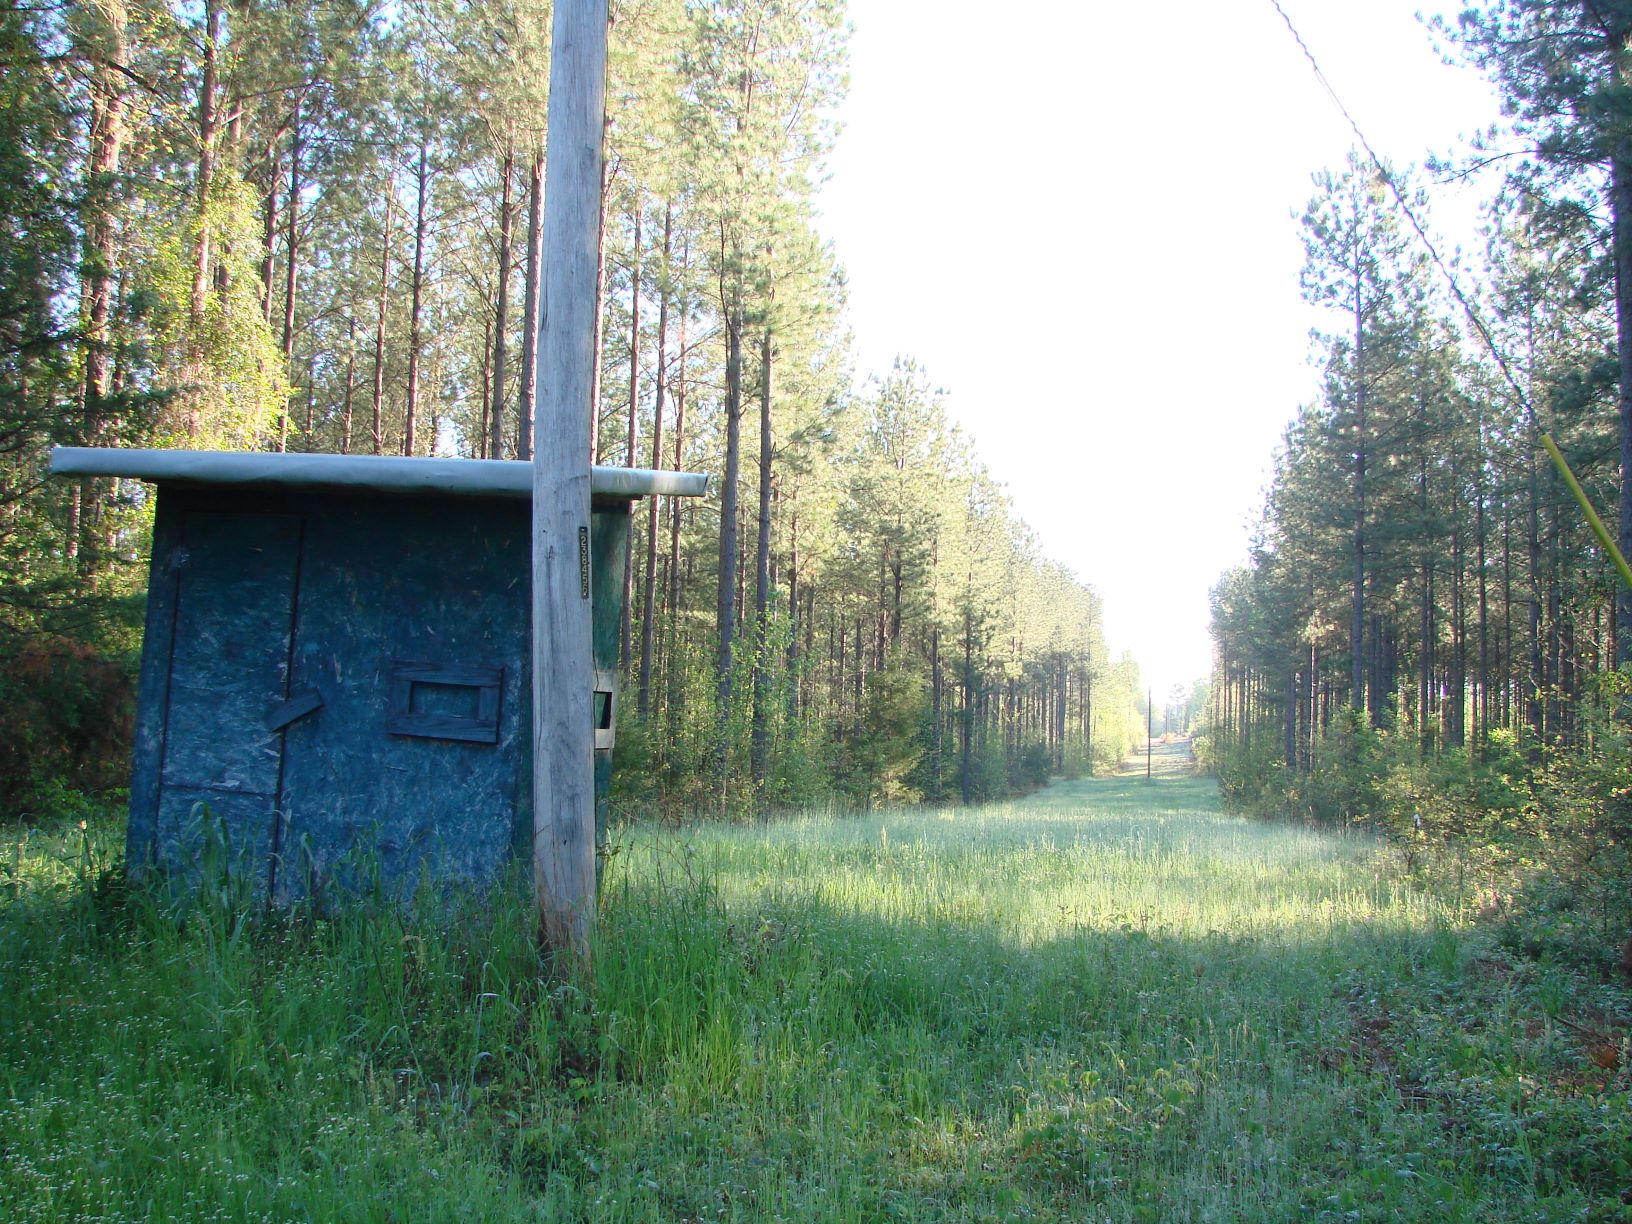 A shooting house on a 500 -foot long food plot